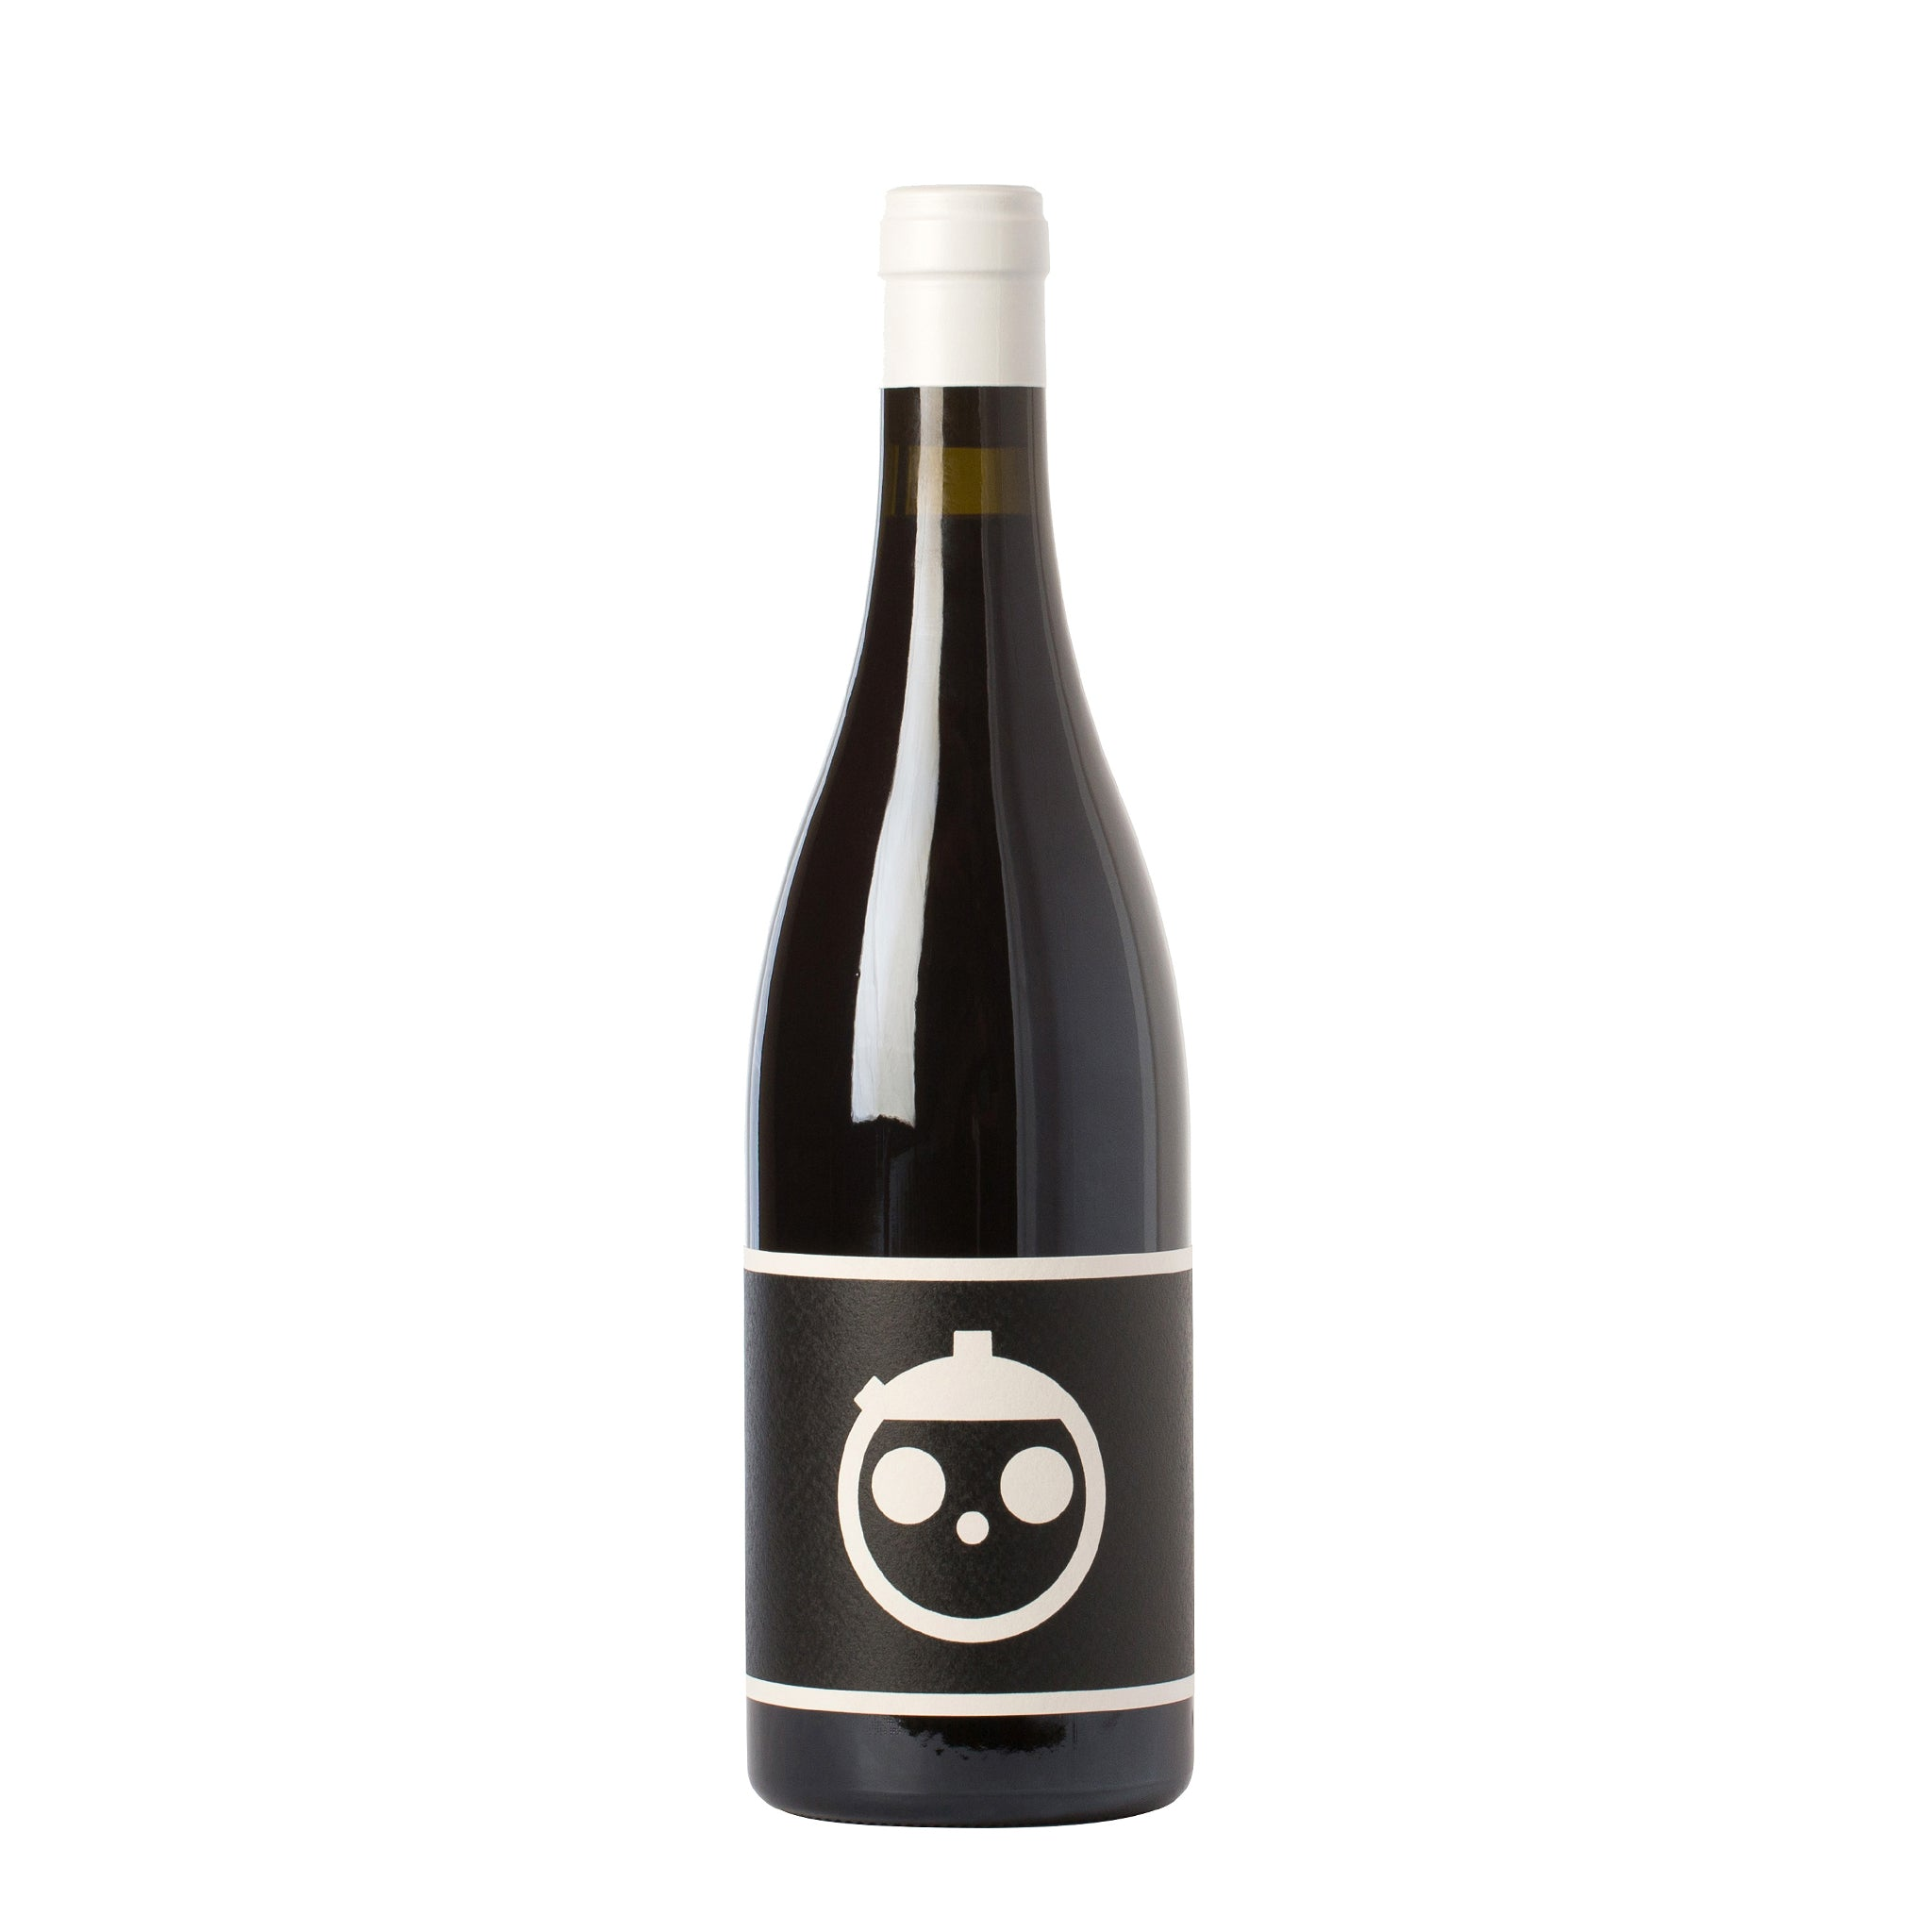 Ochota Barrels A Sense Of Compression Grenache 2017 750ml